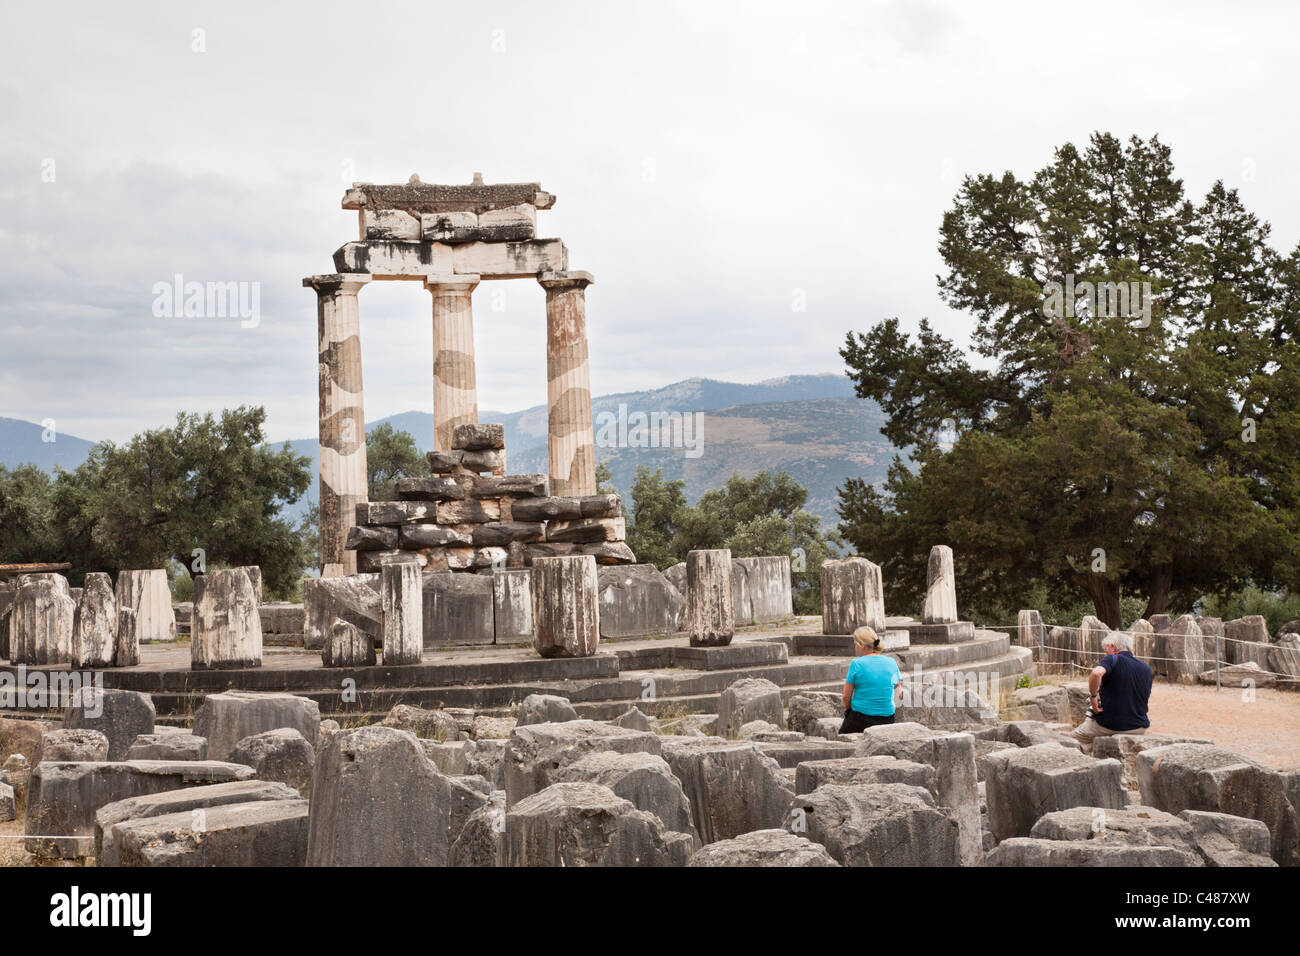 Tholos is a fourth century BC rotunda, Delphi Greece Stock Photo